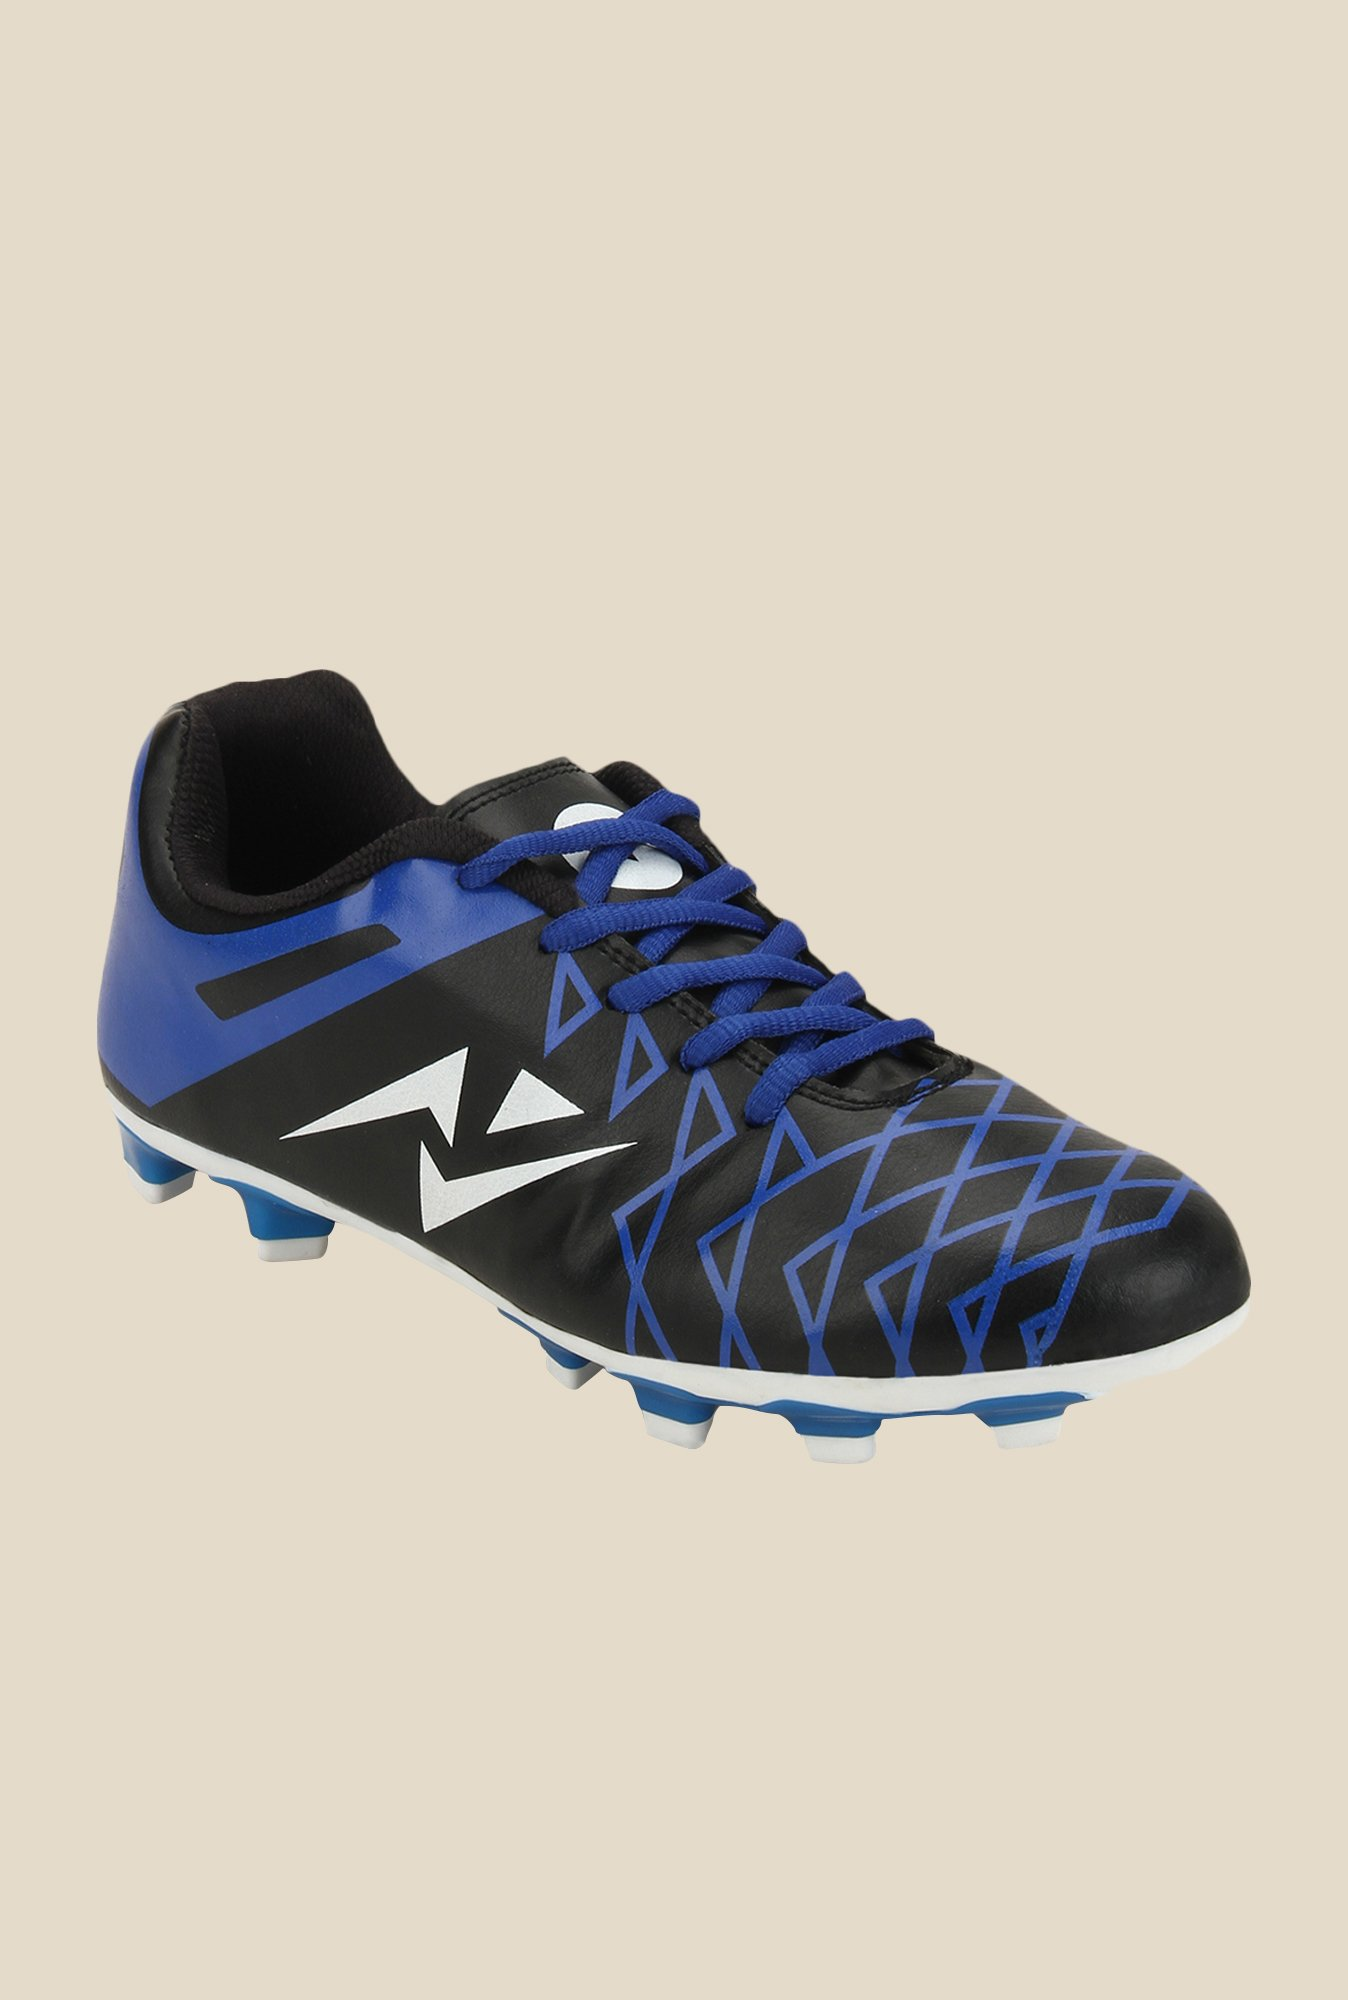 Yepme Blue & Black Football Shoes